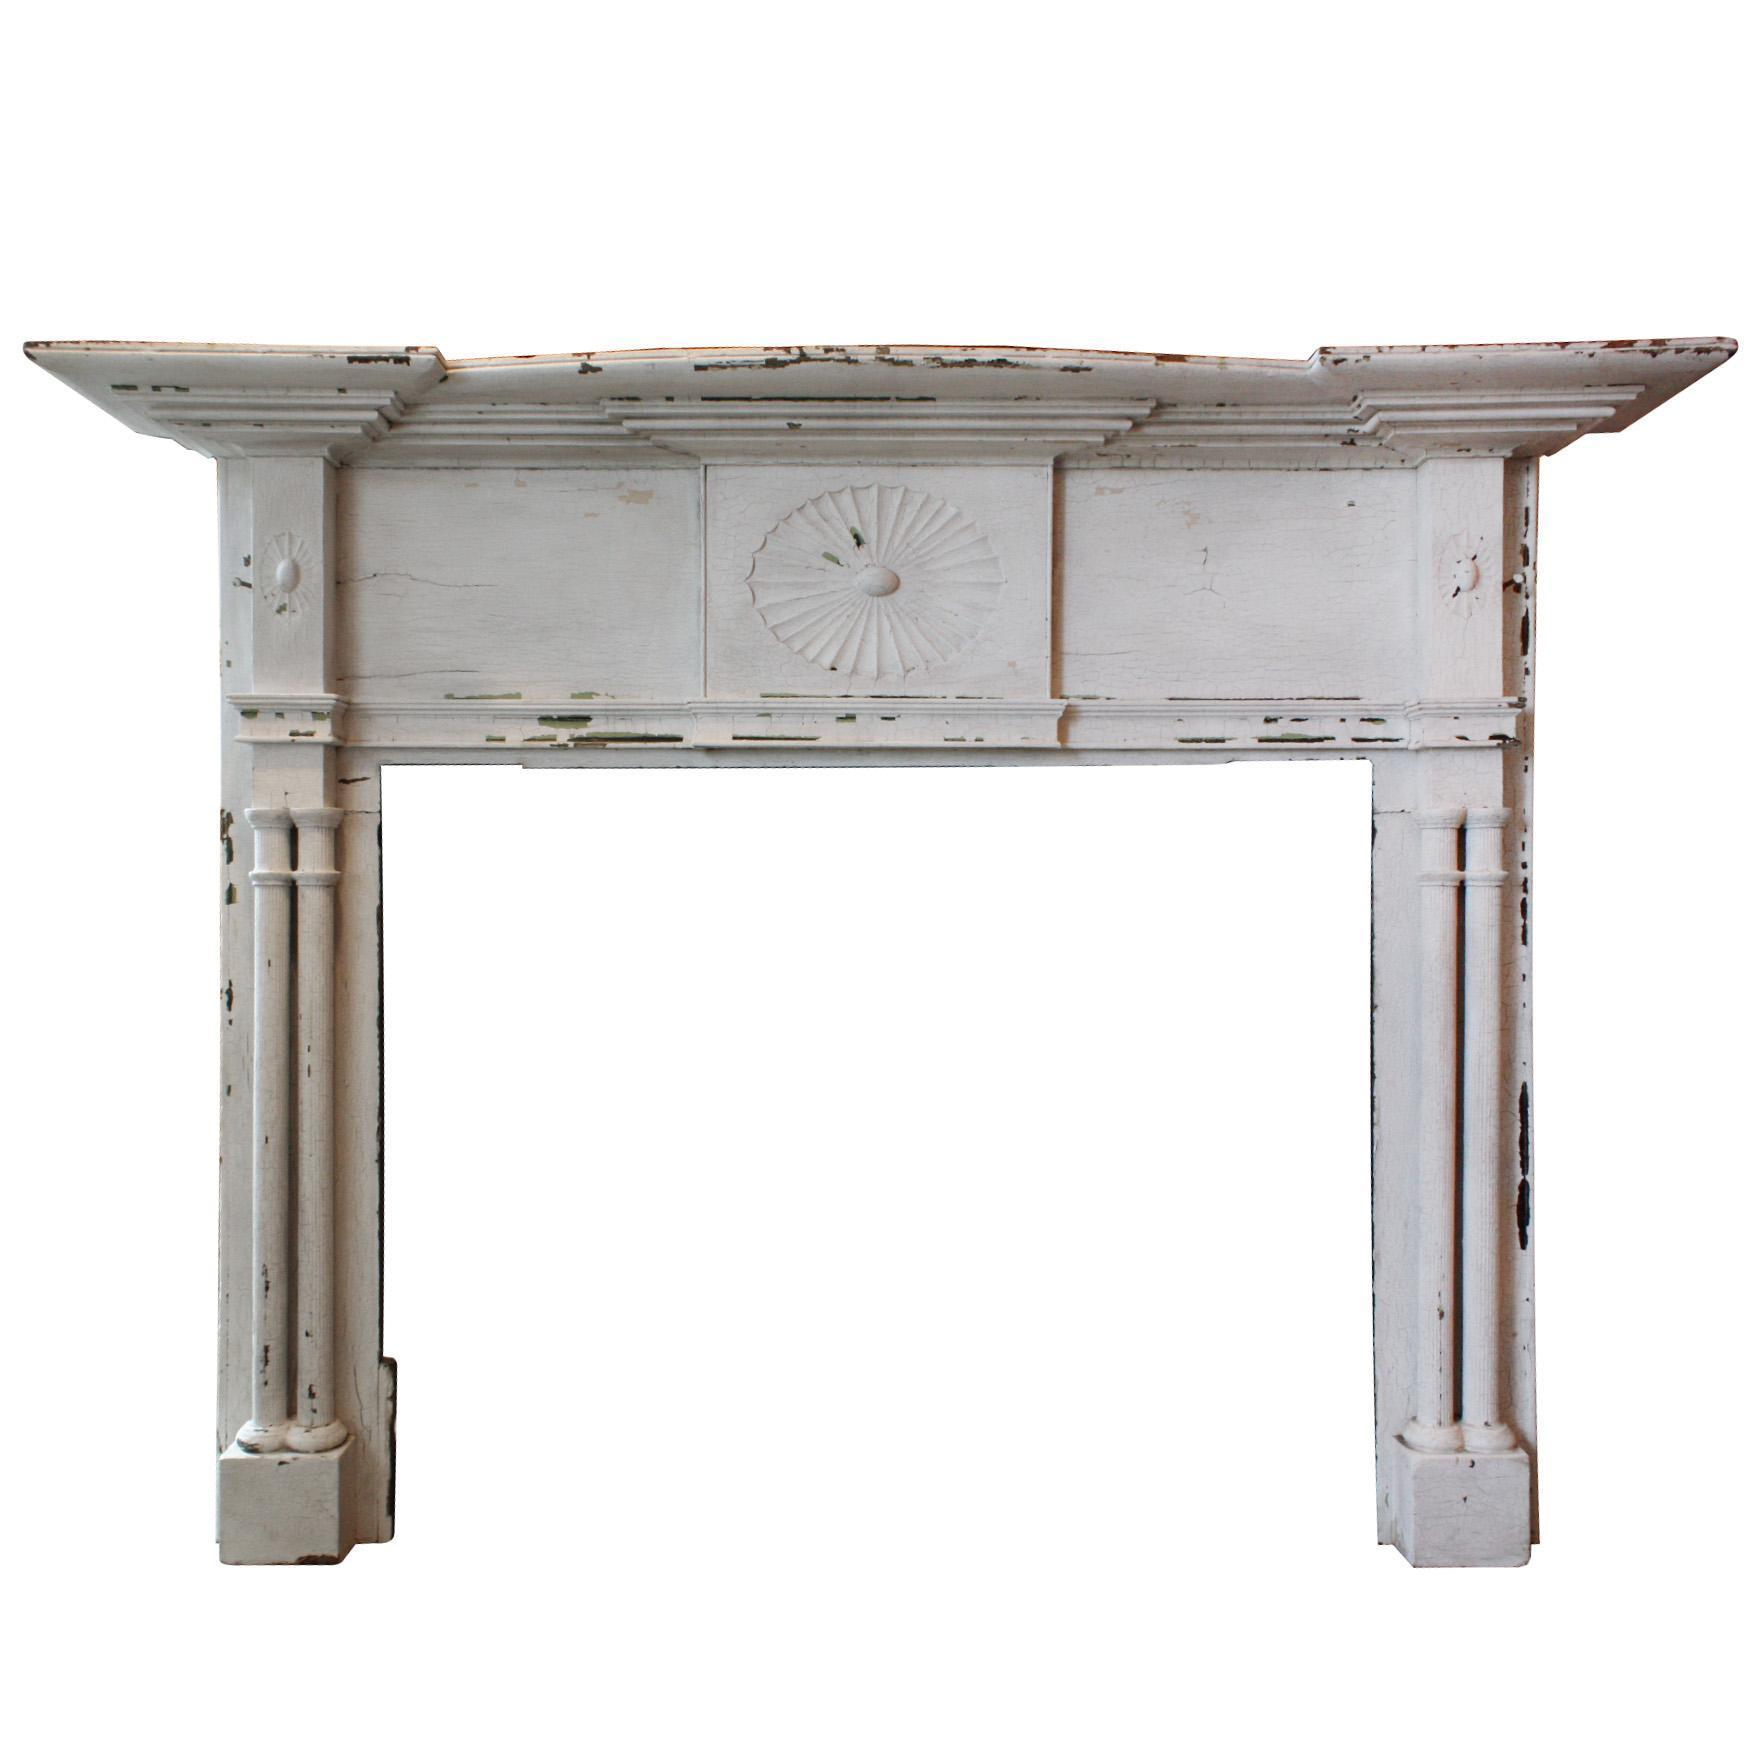 Reclaimed Antique Poplar Federal Fireplace Mantel, c.1820s